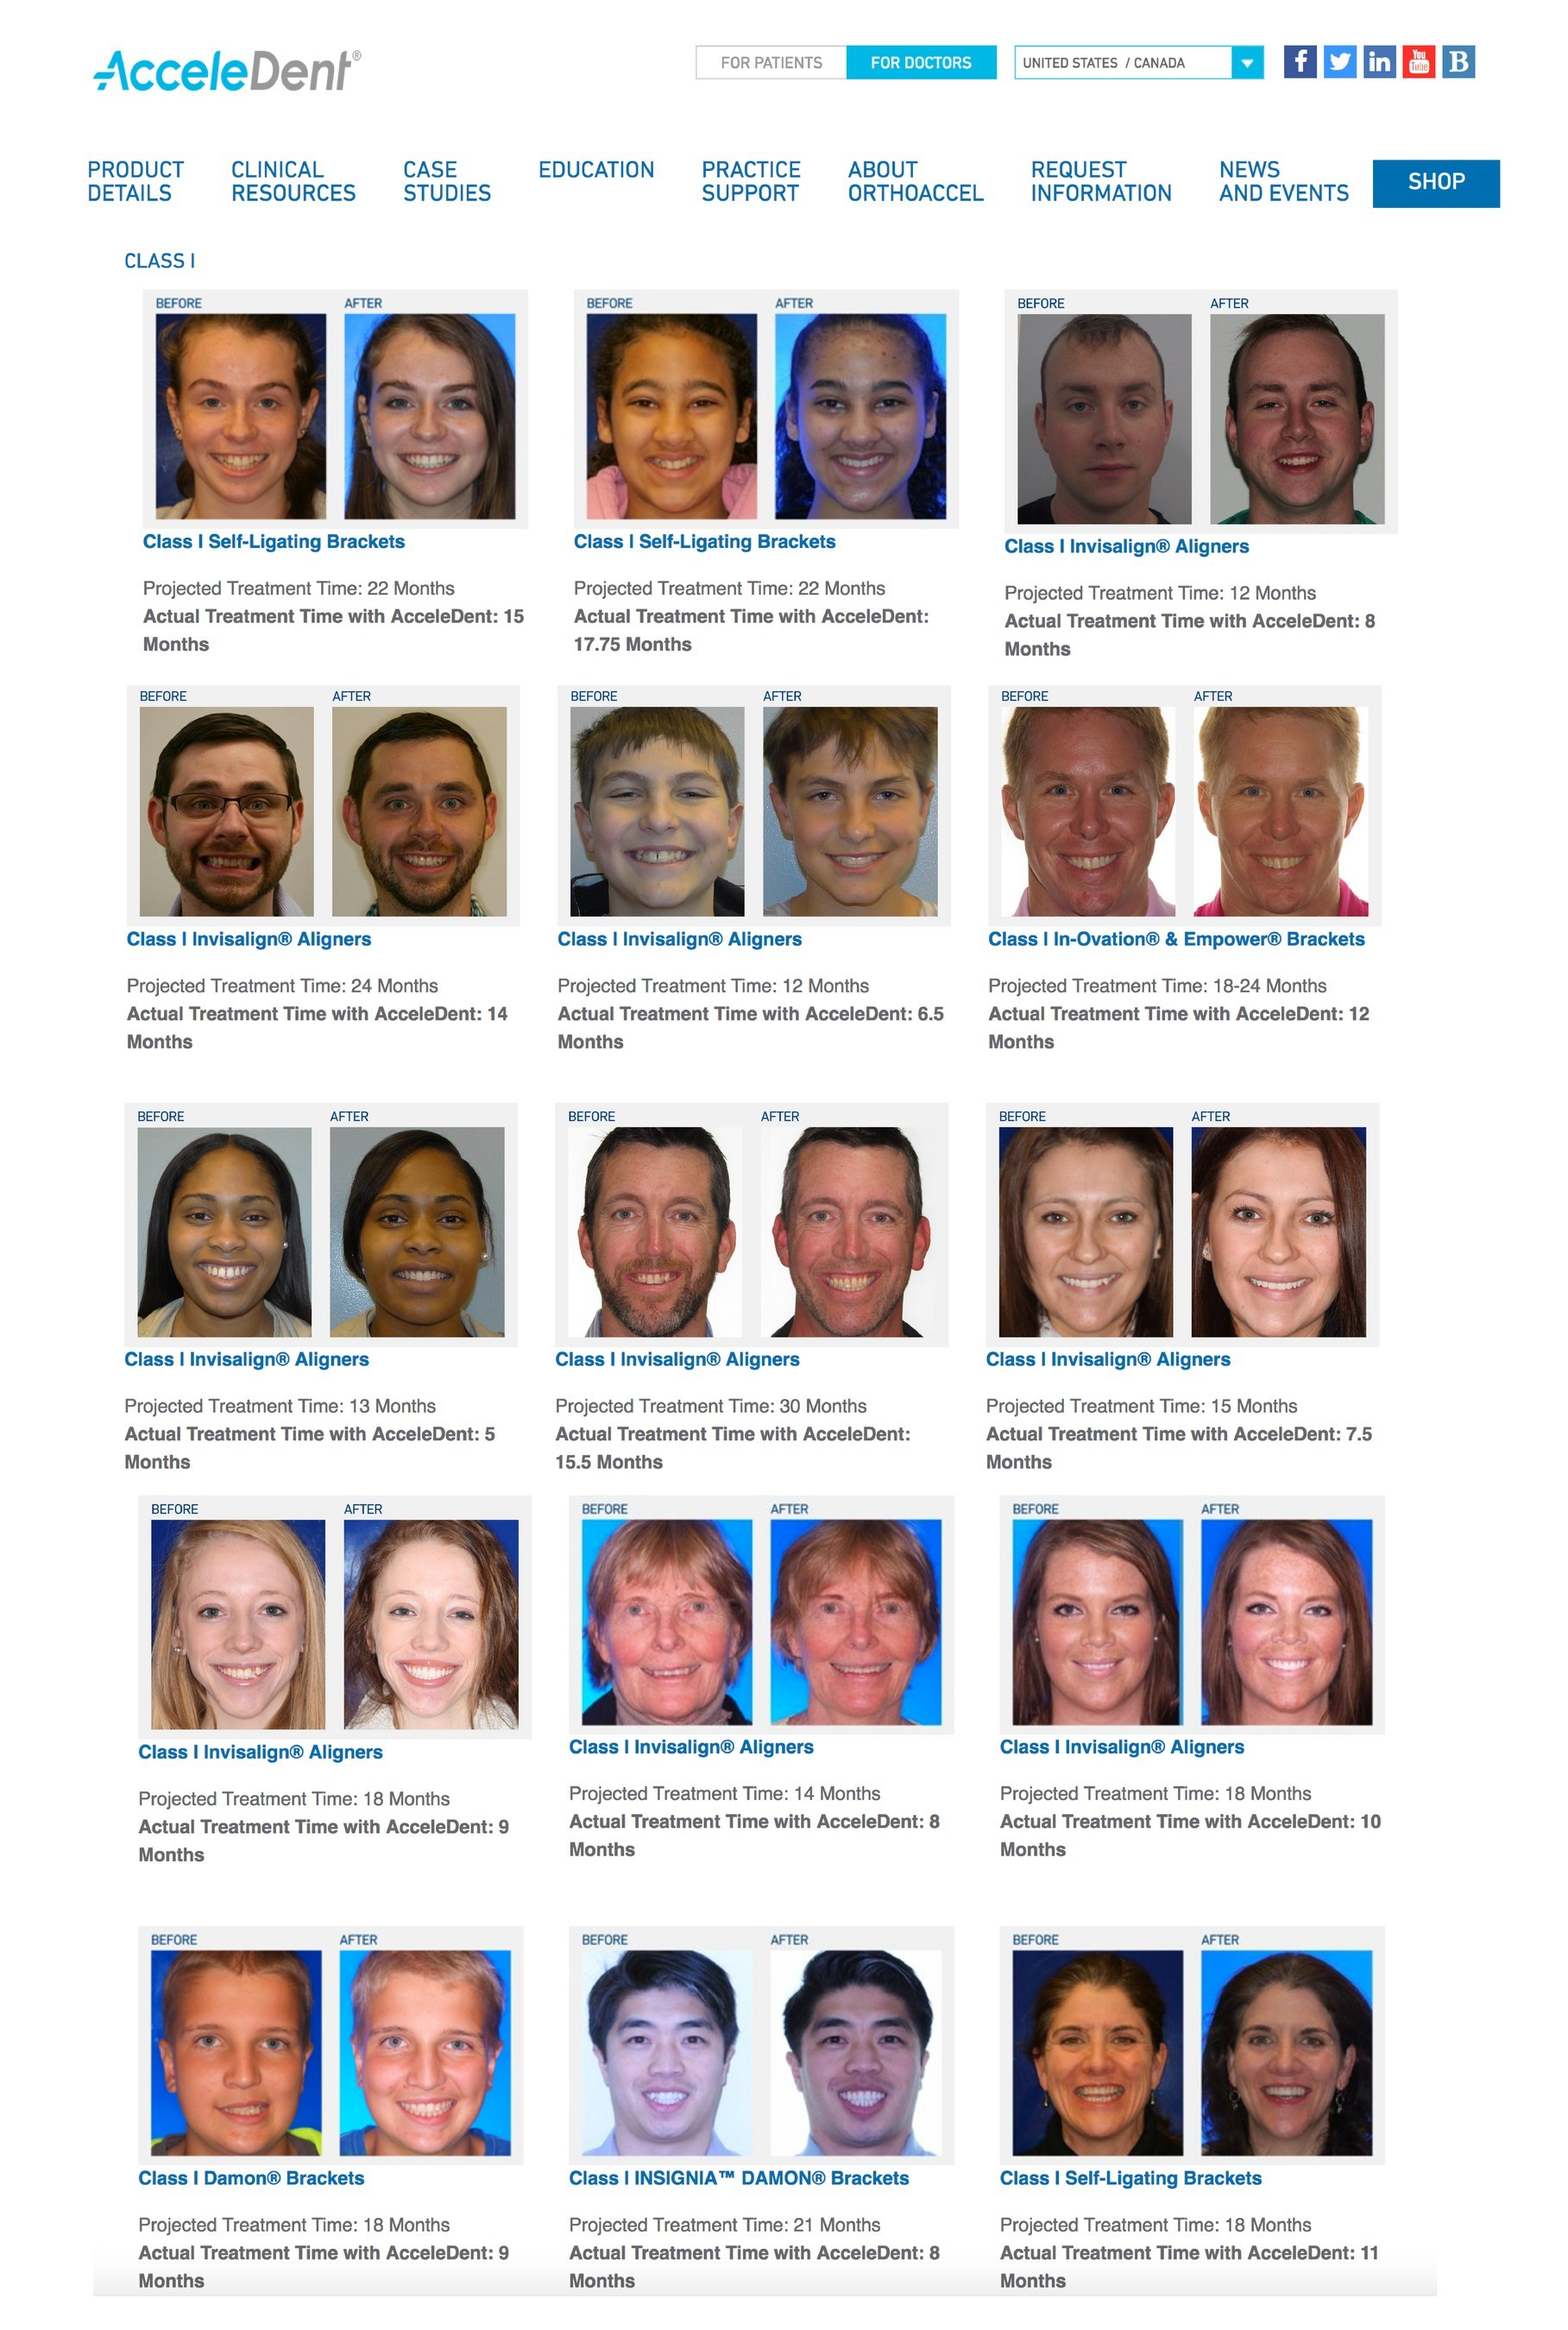 OrthoAccel's new online case gallery includes more than 40 case studies, assembled from 24 orthodontists that show how AcceleDent enabled doctors to accelerate their patients' treatment times to help achieve predictable clinical outcomes. Click here to view the case gallery: http://acceledent.com/orthodontists/case-studies/.